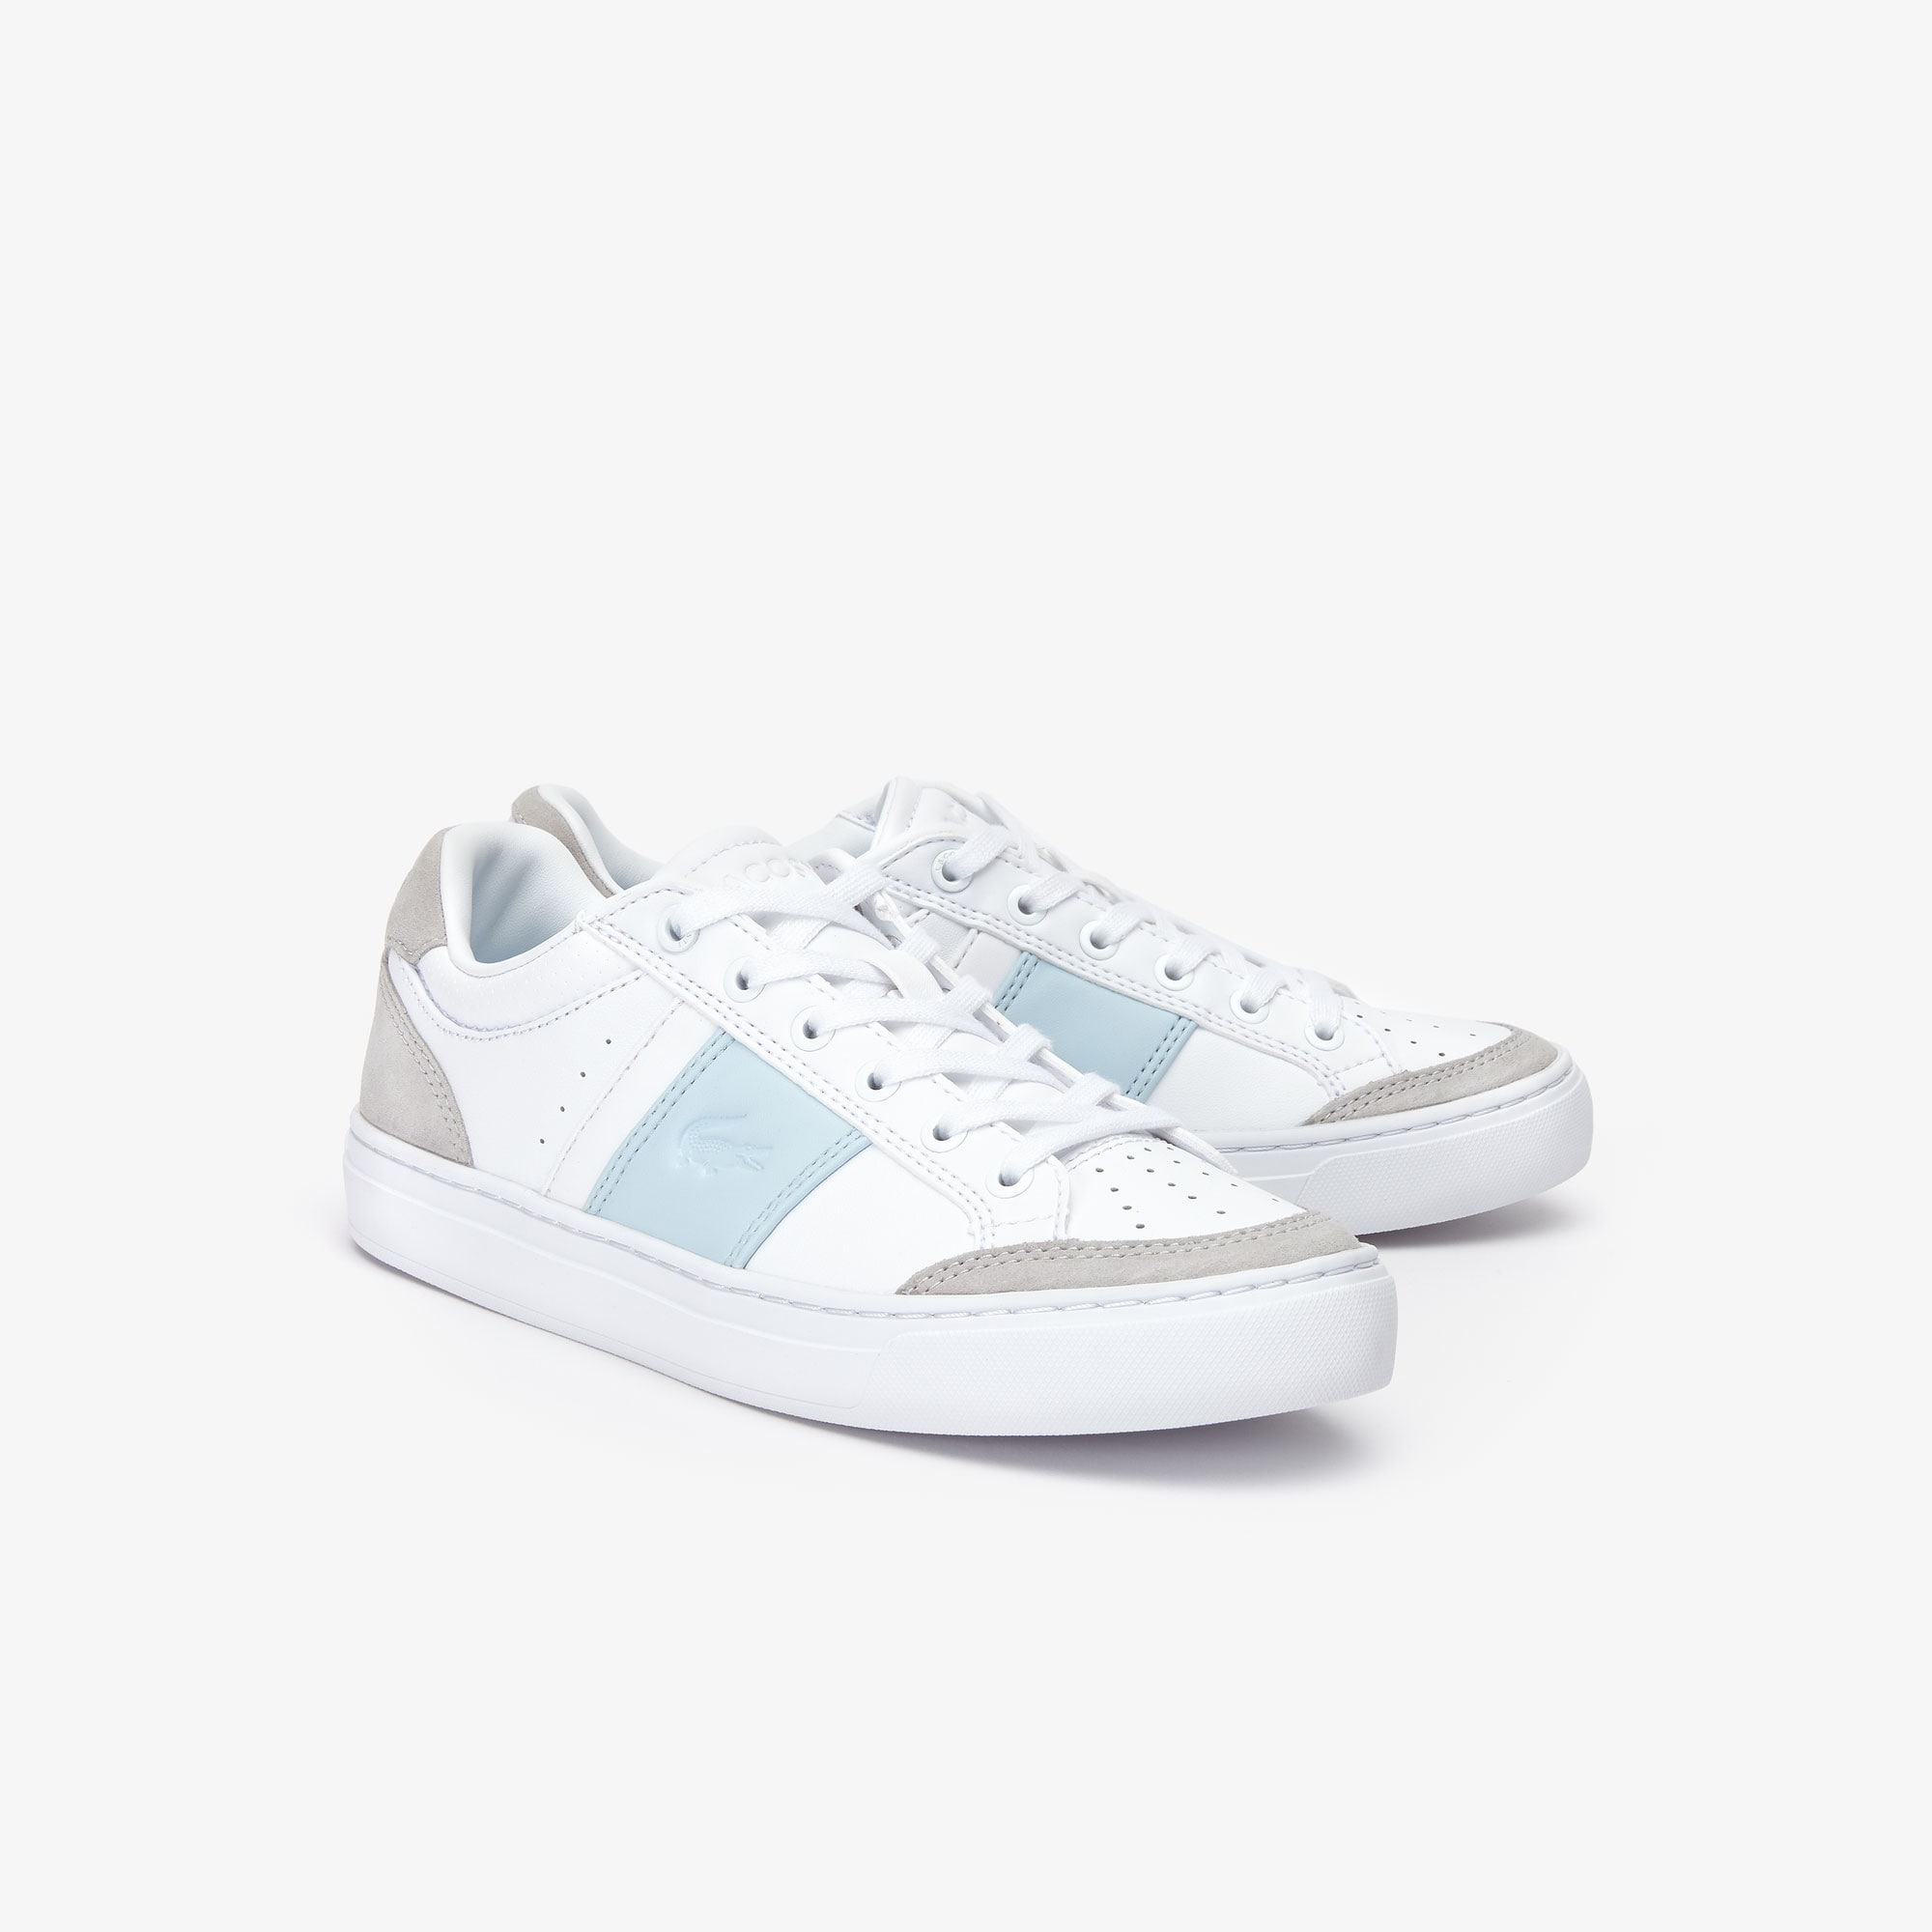 Damen-Sneakers COURTLINE aus Synthetik